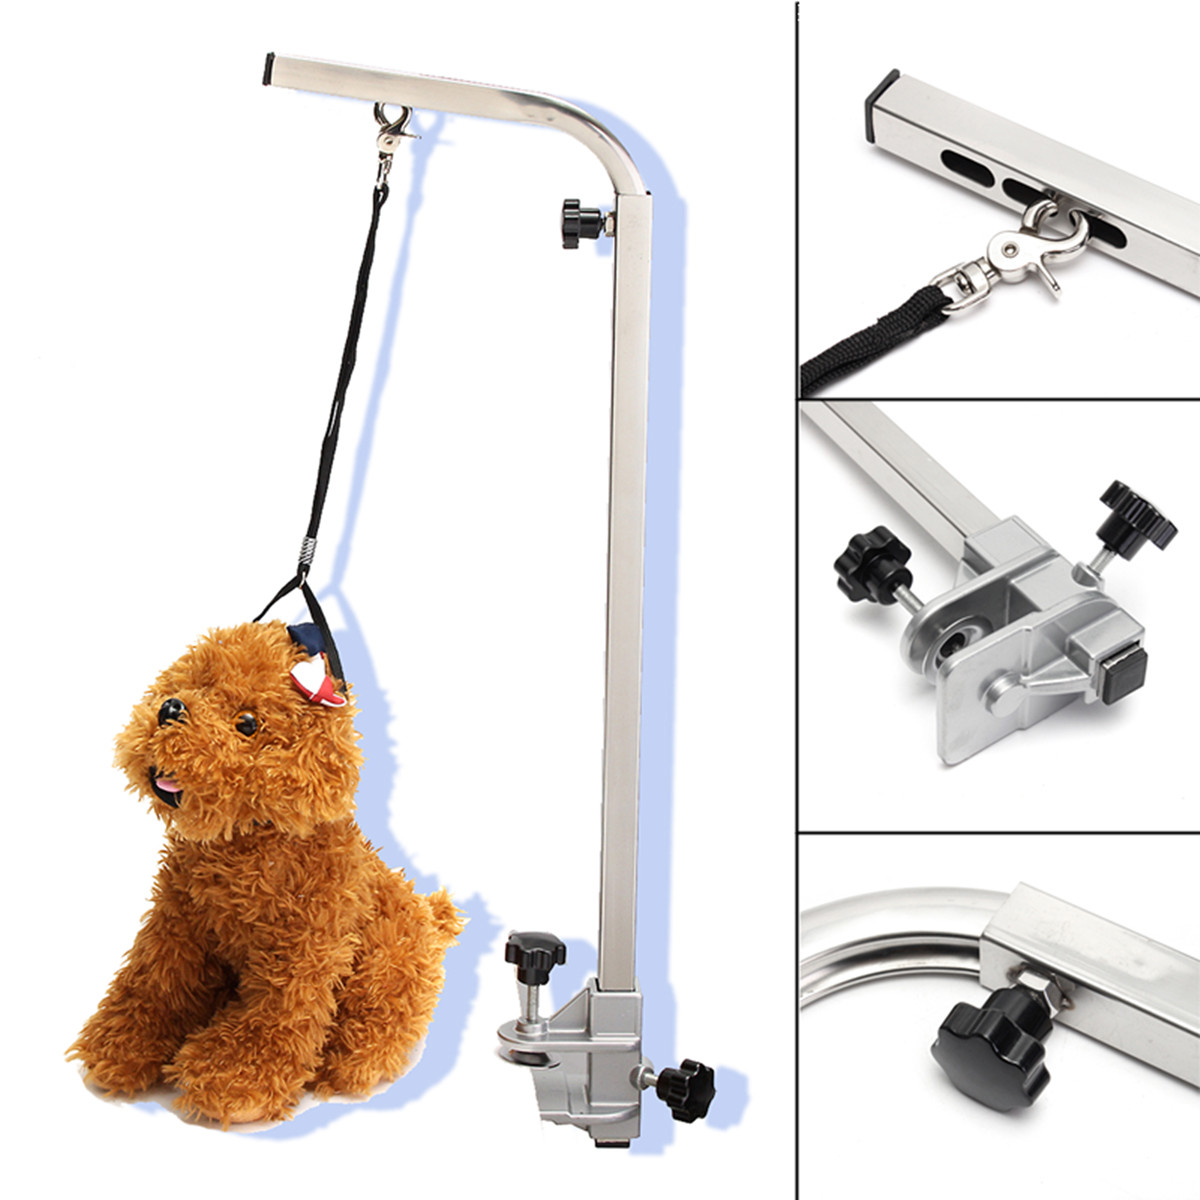 1PC Portable Adjustable Metal Table Arm Support Holder For Pet Dog Grooming Bath Table Desk1PC Portable Adjustable Metal Table Arm Support Holder For Pet Dog Grooming Bath Table Desk